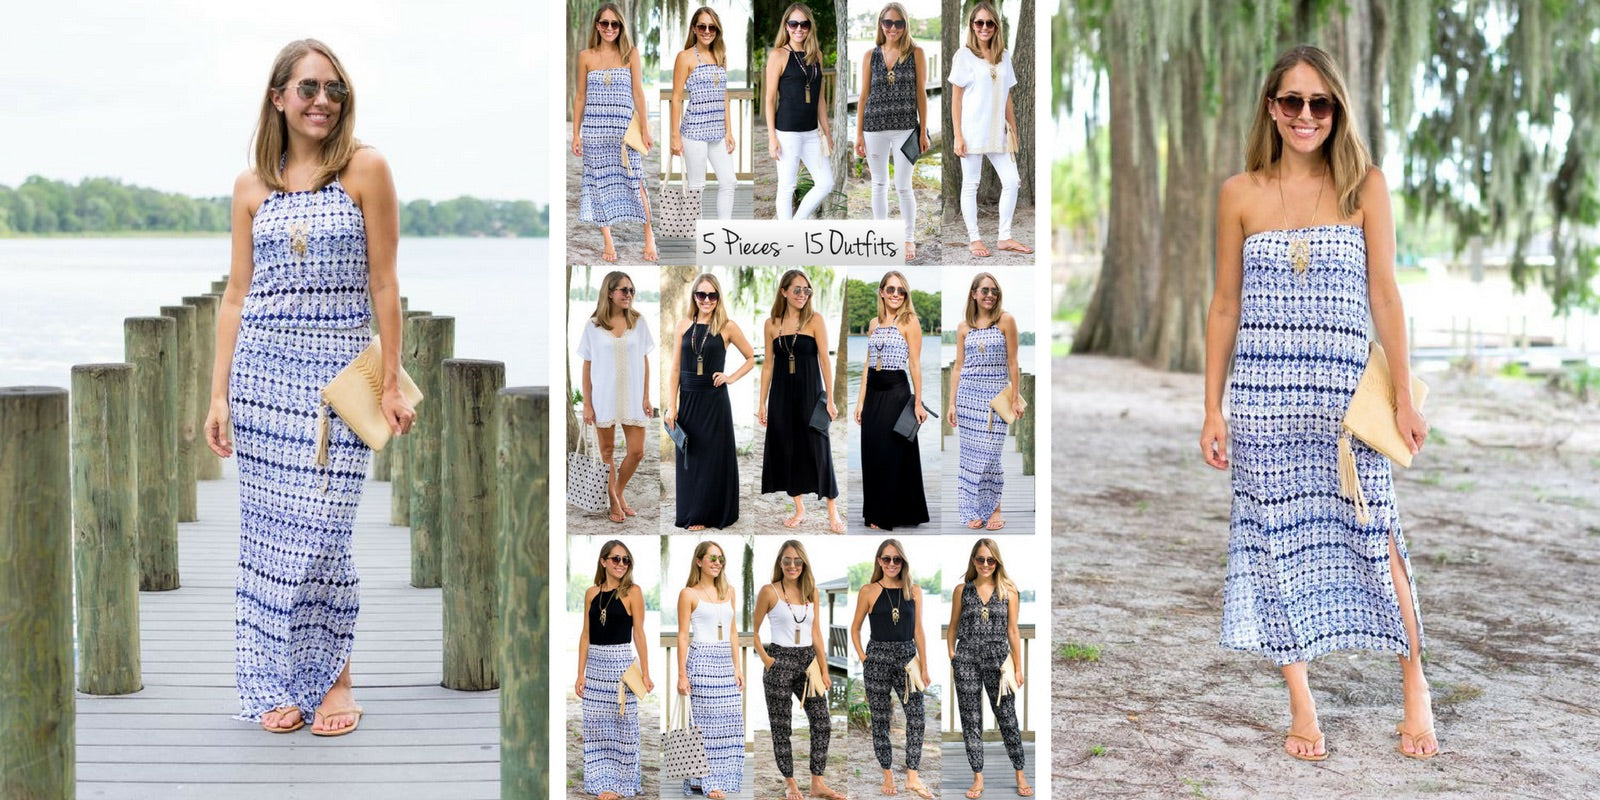 J's Everyday Fashion wearing Vacay Tahiti Collection: 5 items = 15 outfits